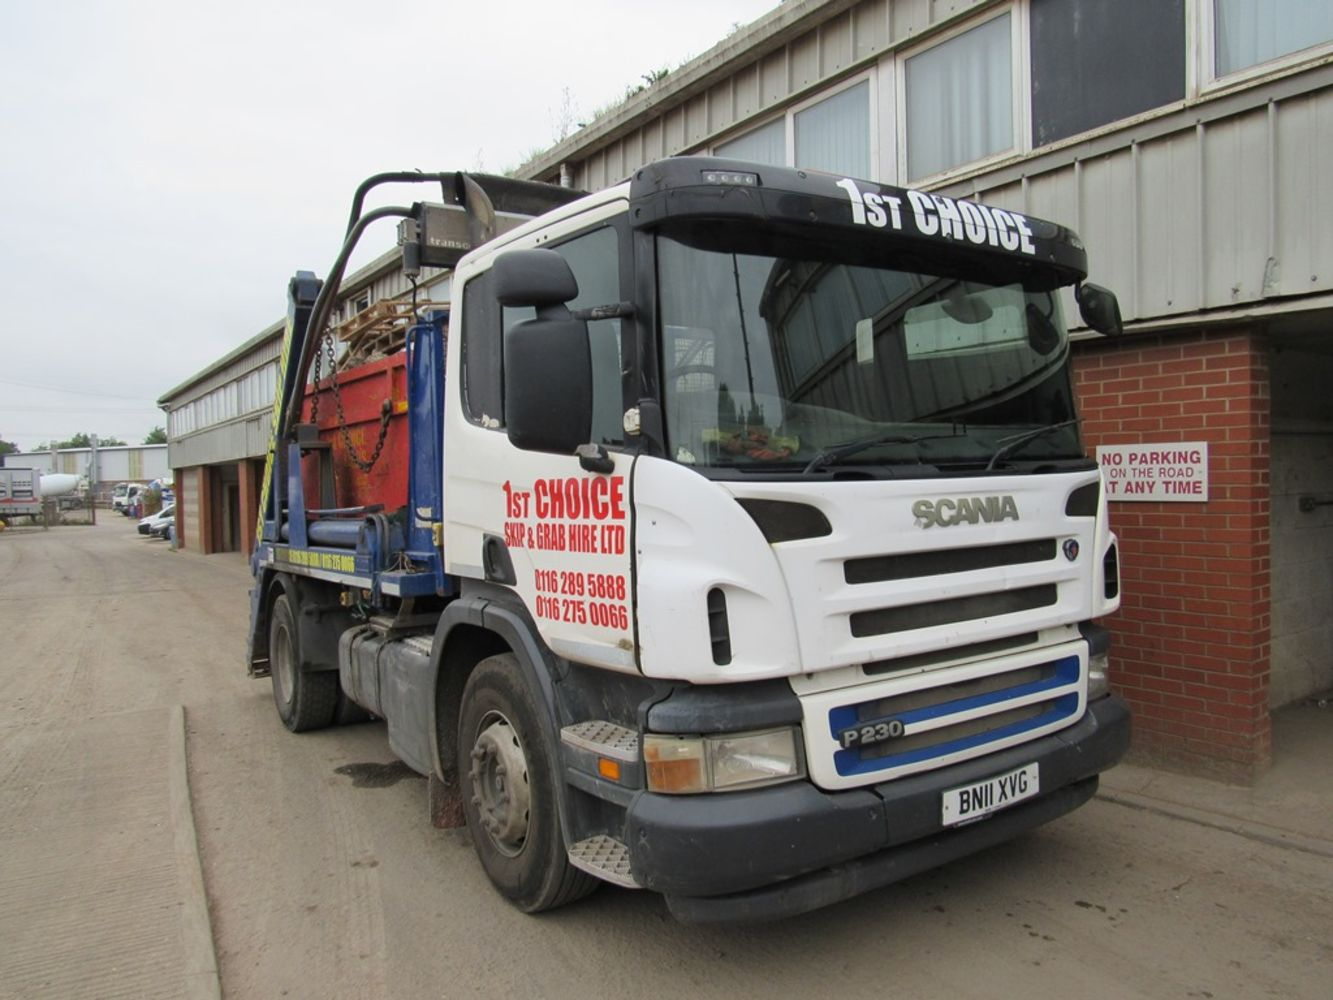 Assets of a Skip Hire & Waste Recycling Company Together with Volumetric Concrete Mixing Equipment